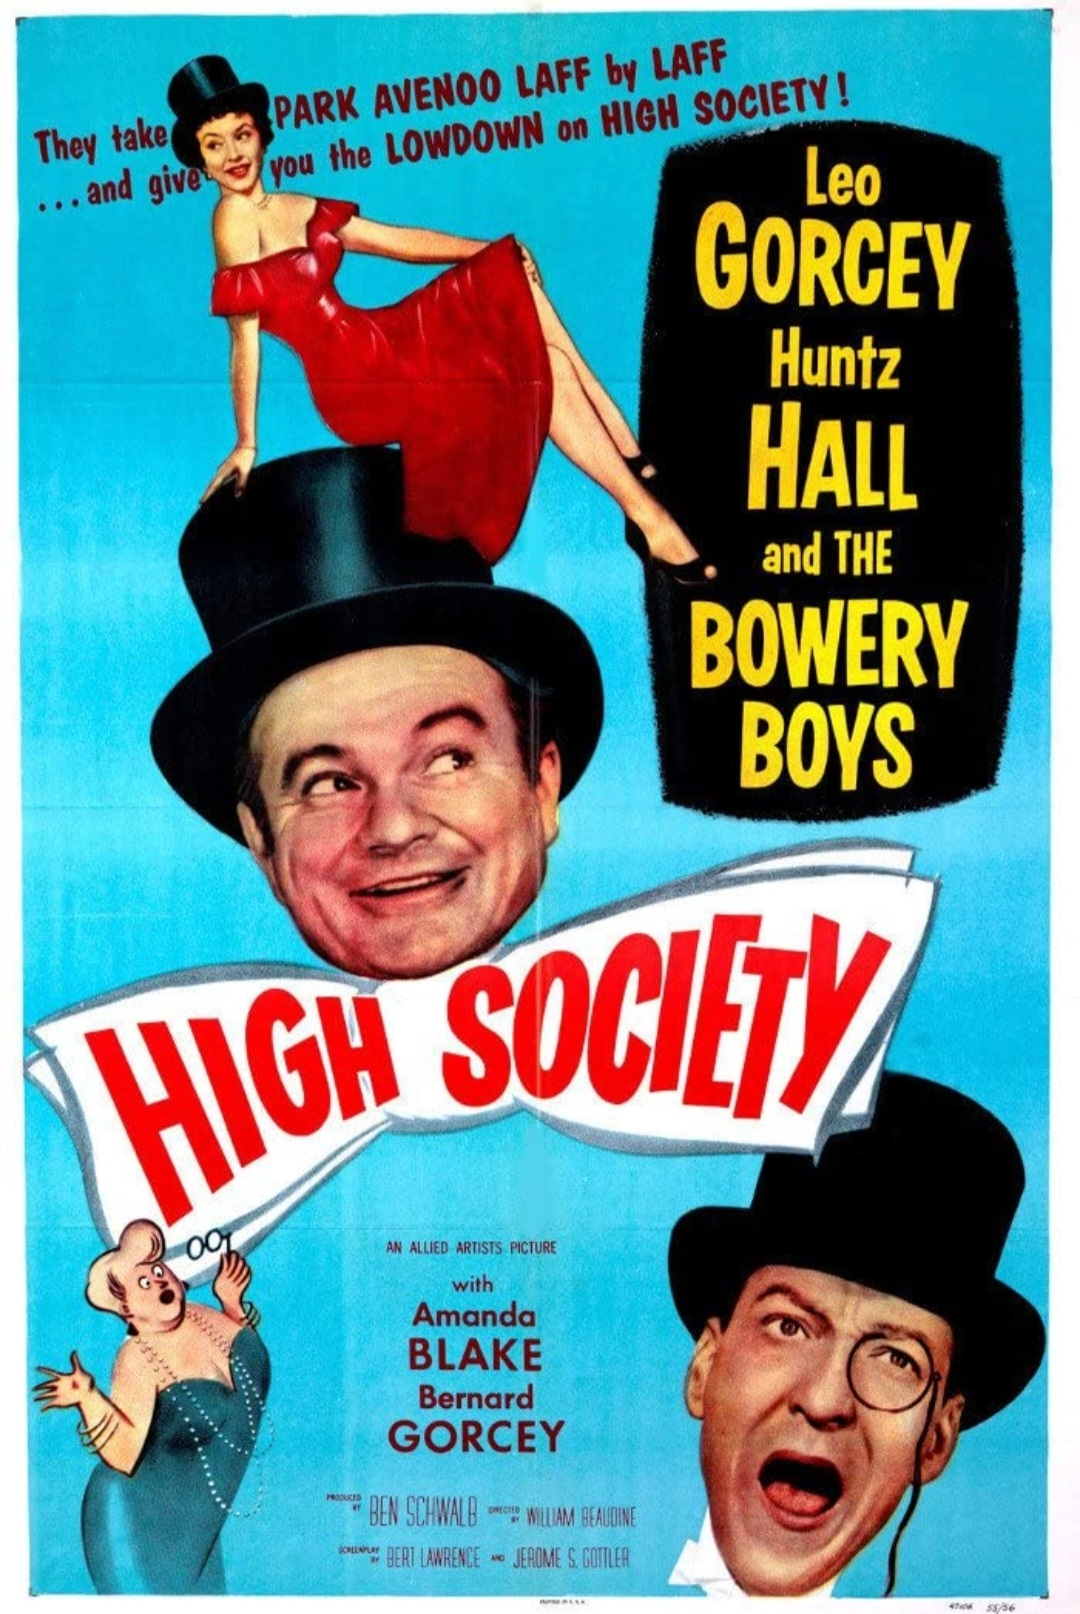 HighSociety1955.jpg